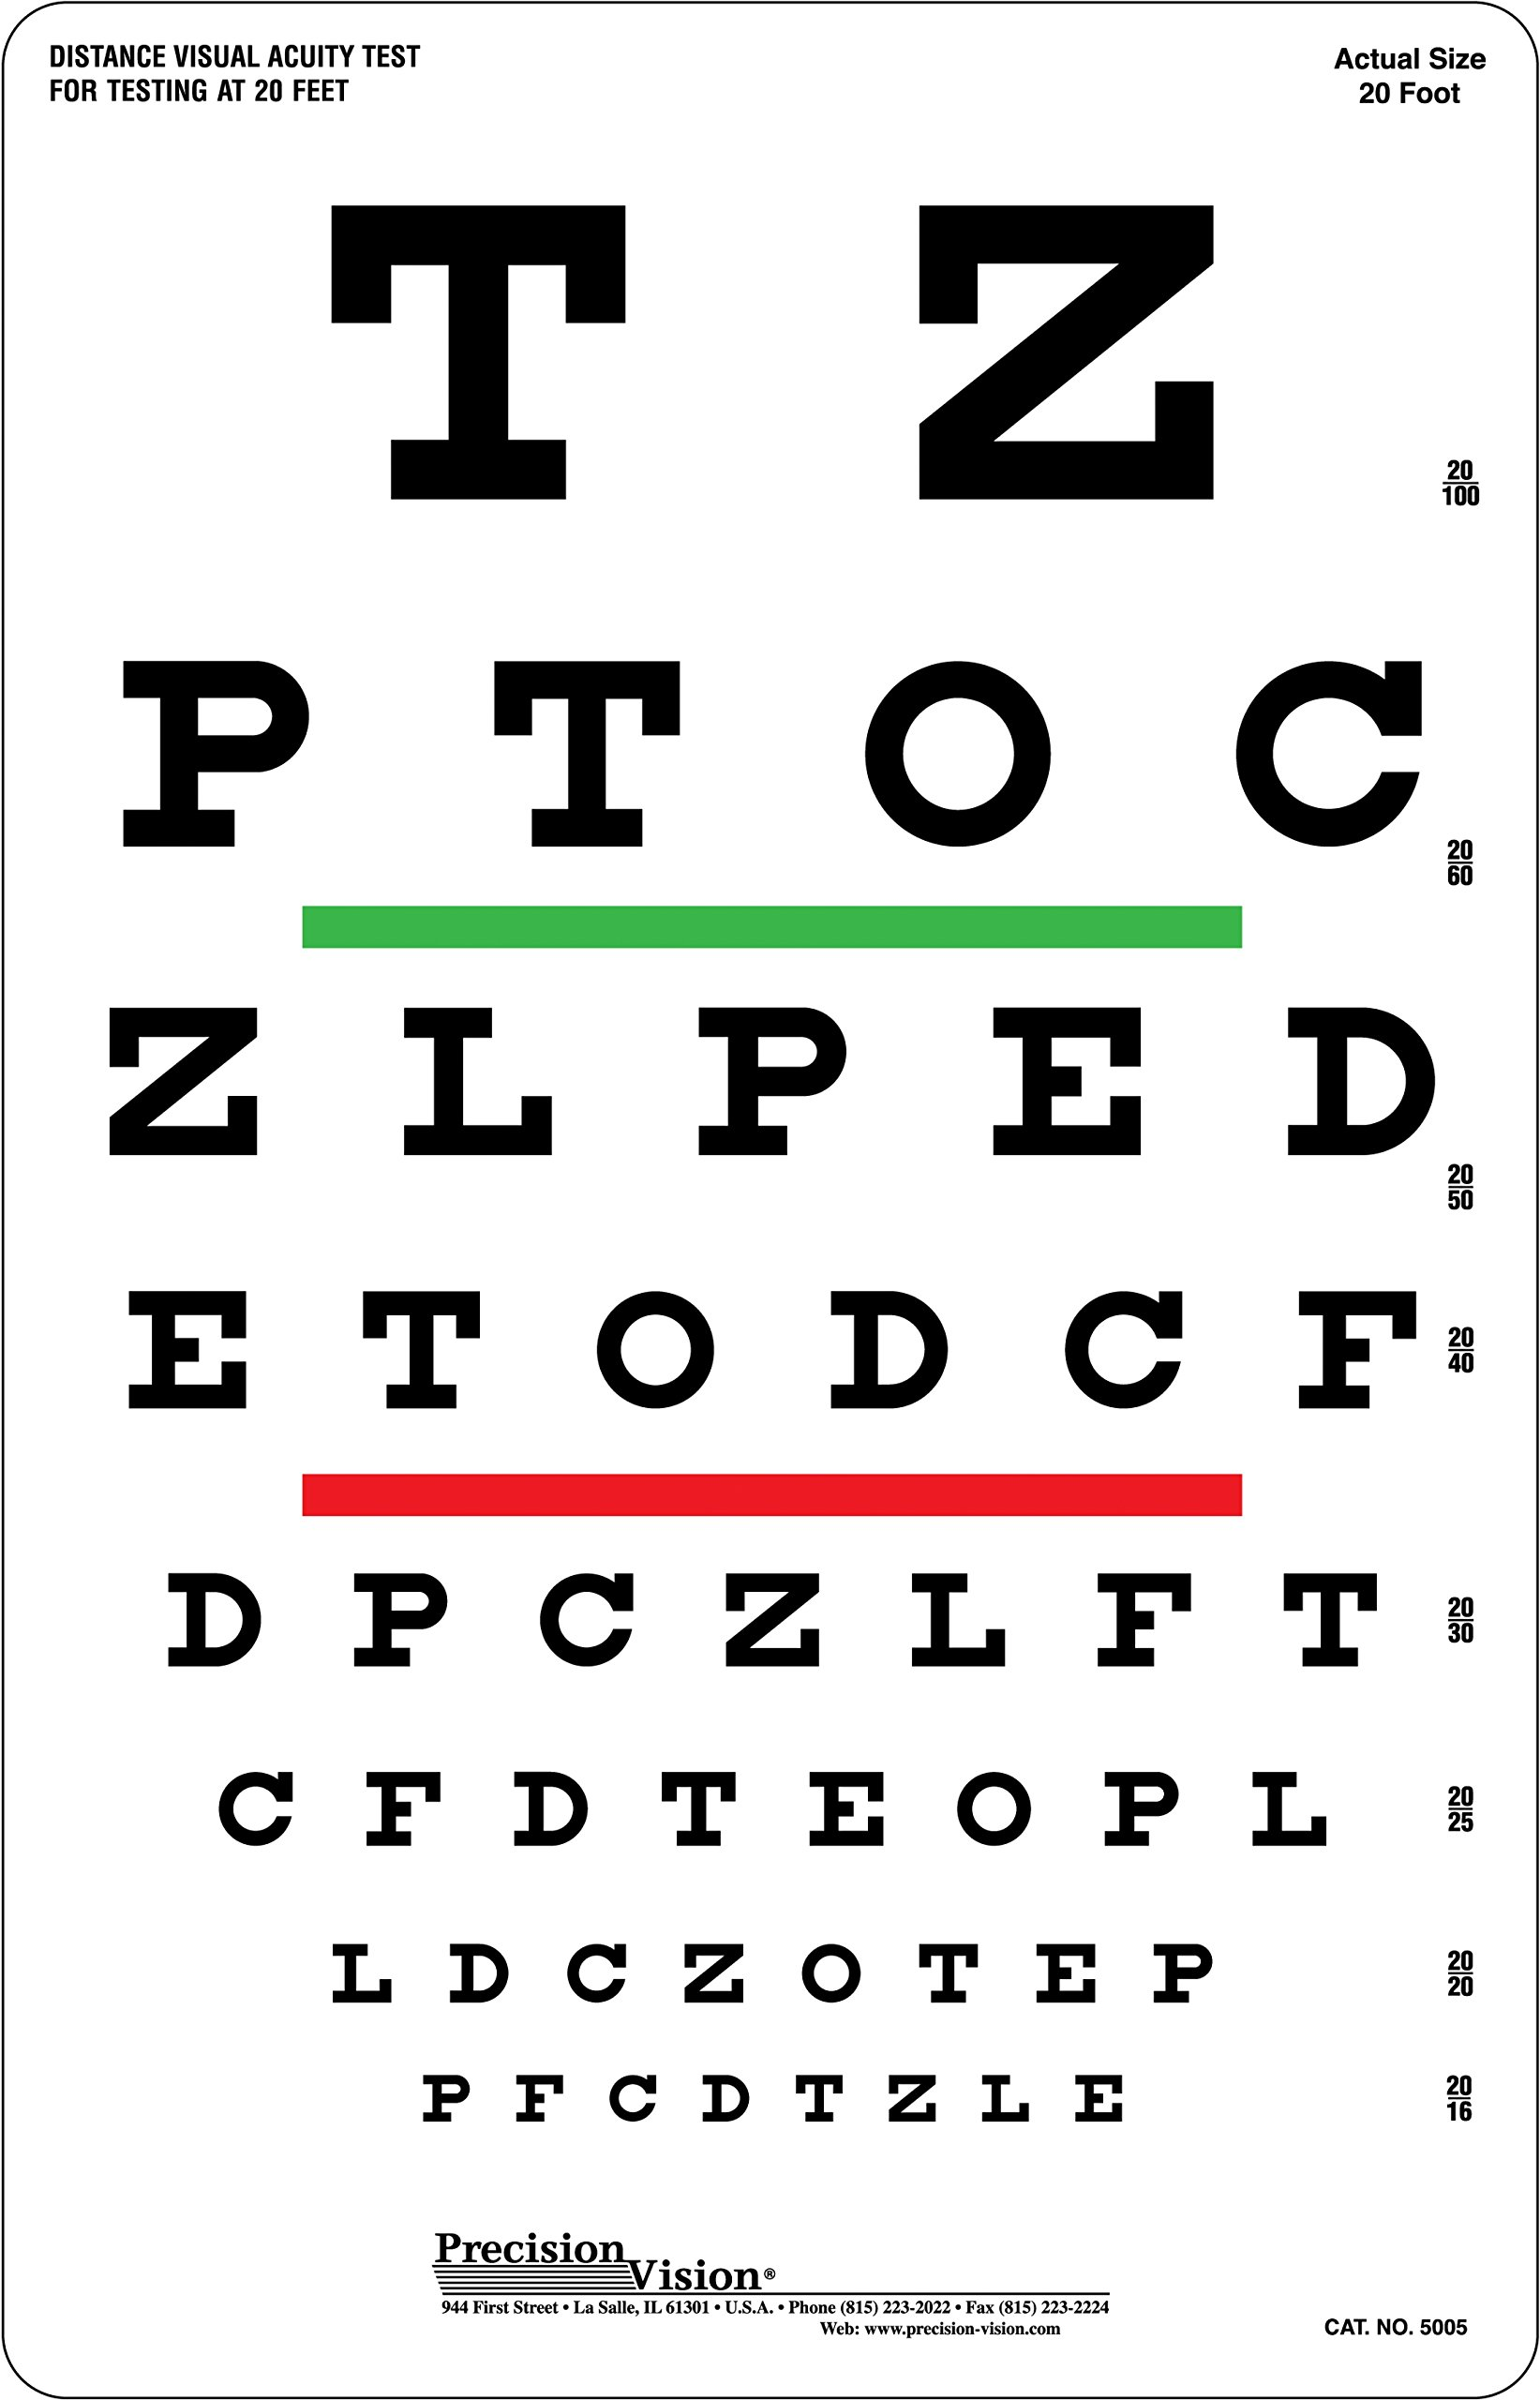 Snellen Eye Chart, Red and Green Bar Visual Acuity Test by Precision Vision (Image #1)